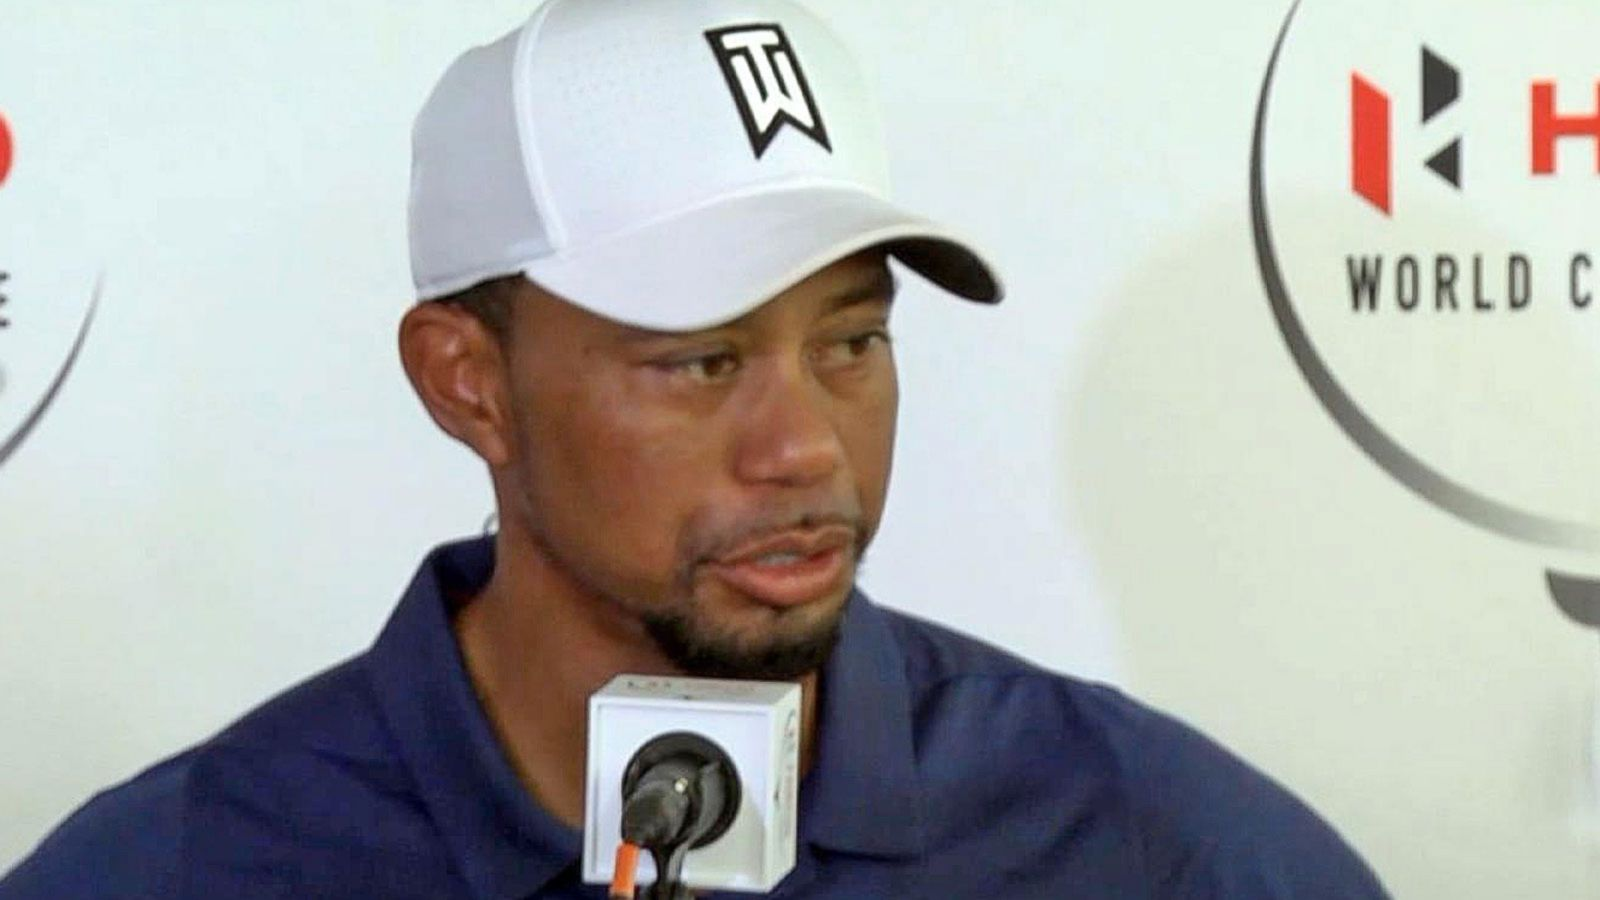 VIDEO: Tiger Woods Could Make Golf Comeback